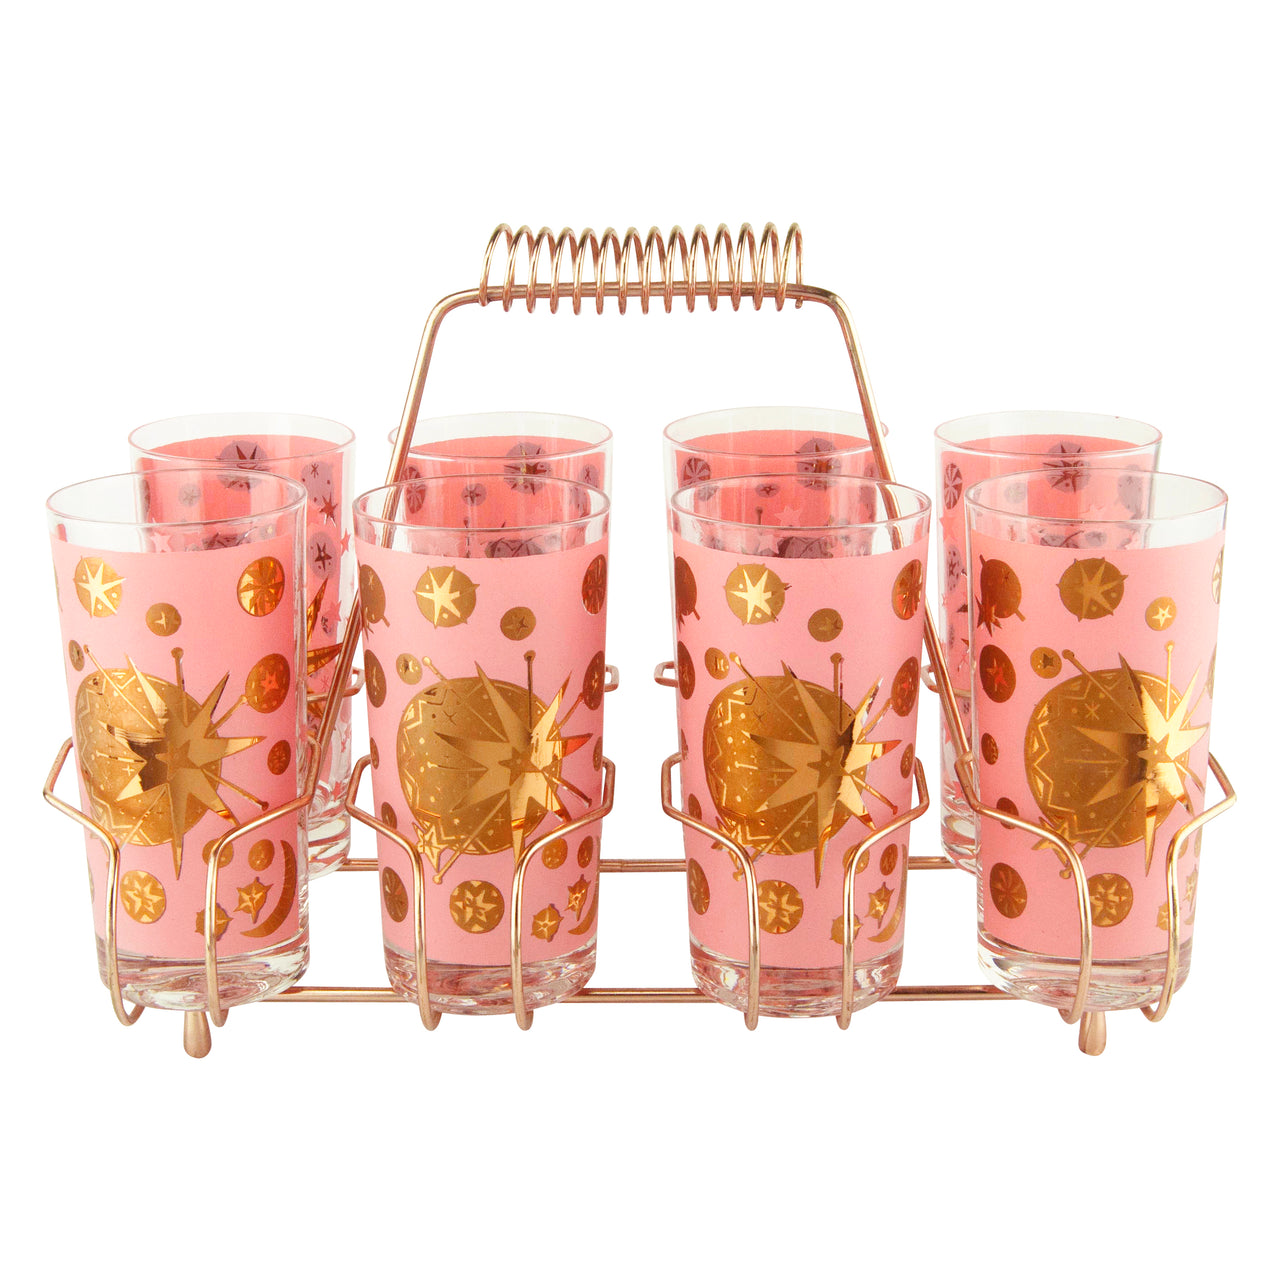 Vintage Starlyte Atomic Pink and Gold Star Collins Caddy | The Hour